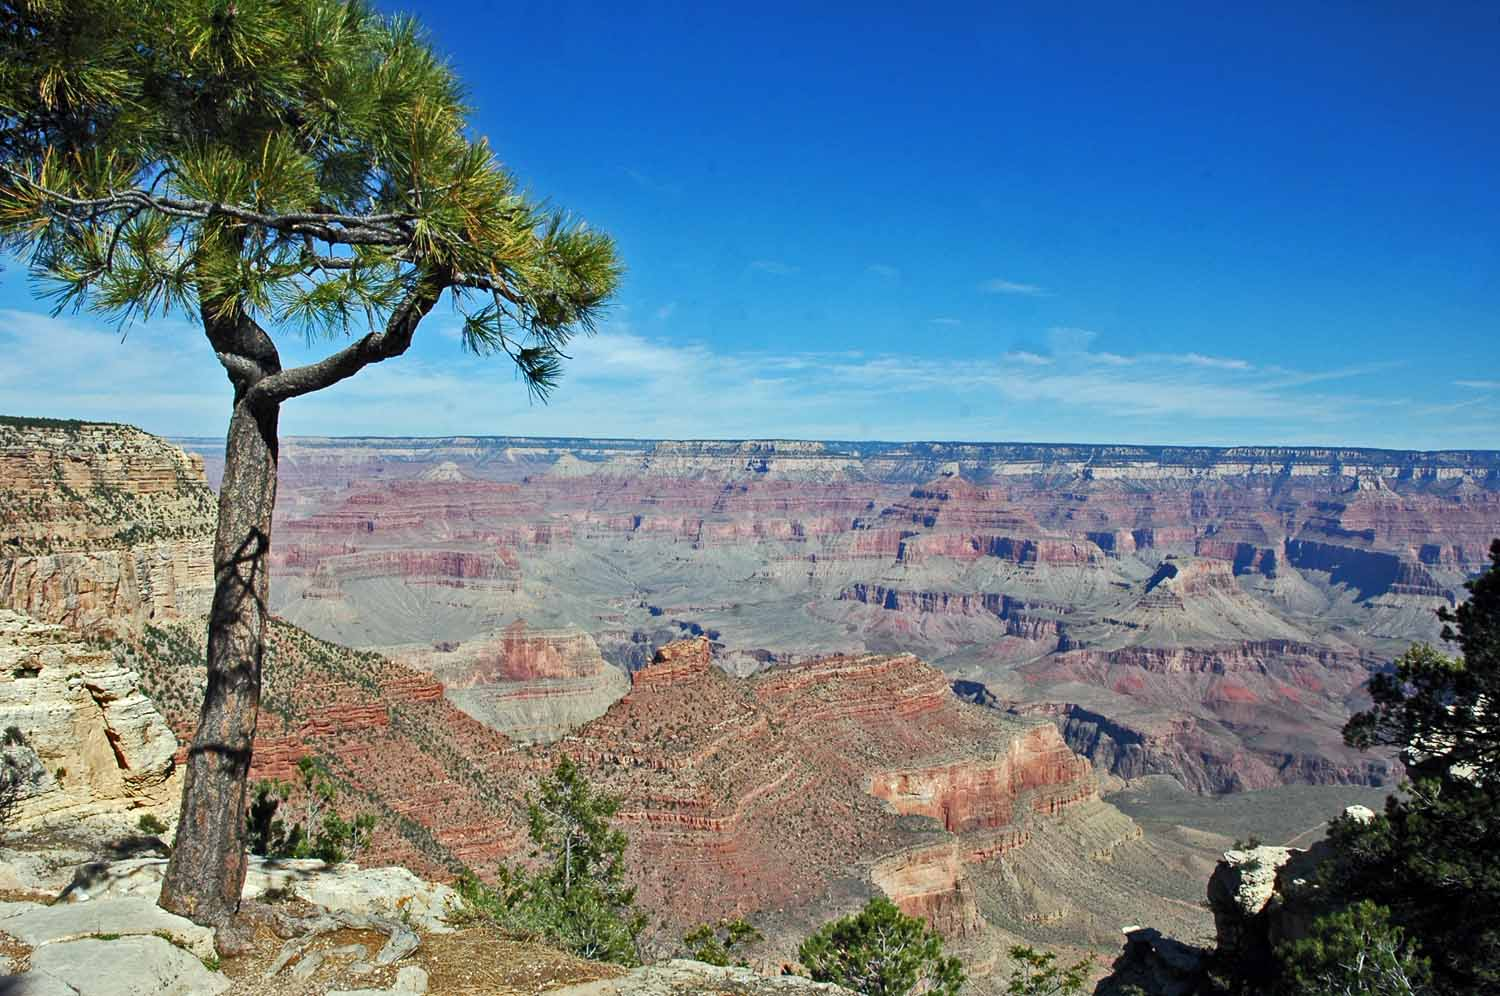 South Rim Trail - East